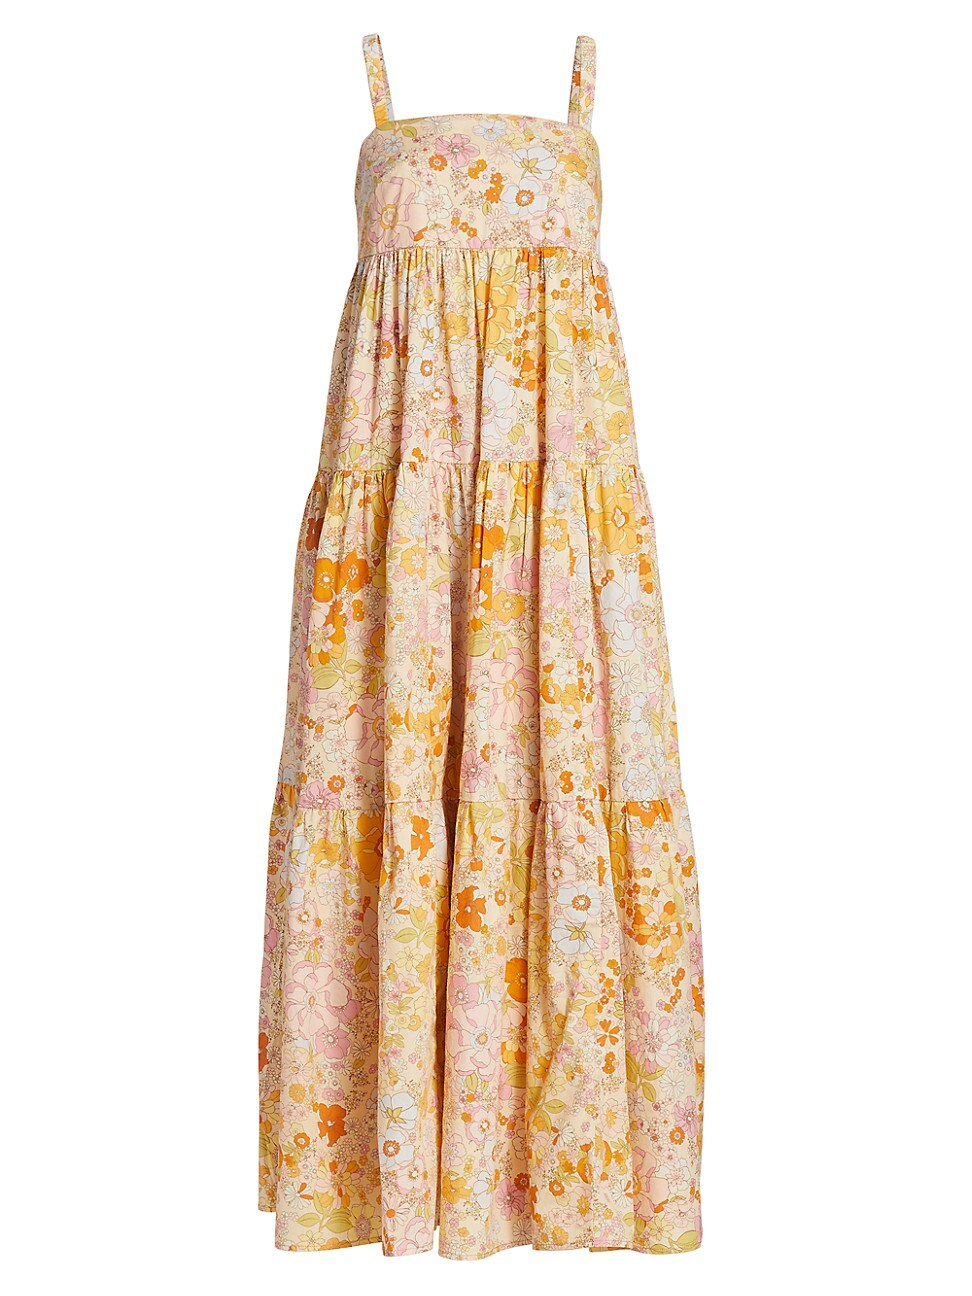 Free People WOMEN'S PARK SLOPE MAXI DRESS